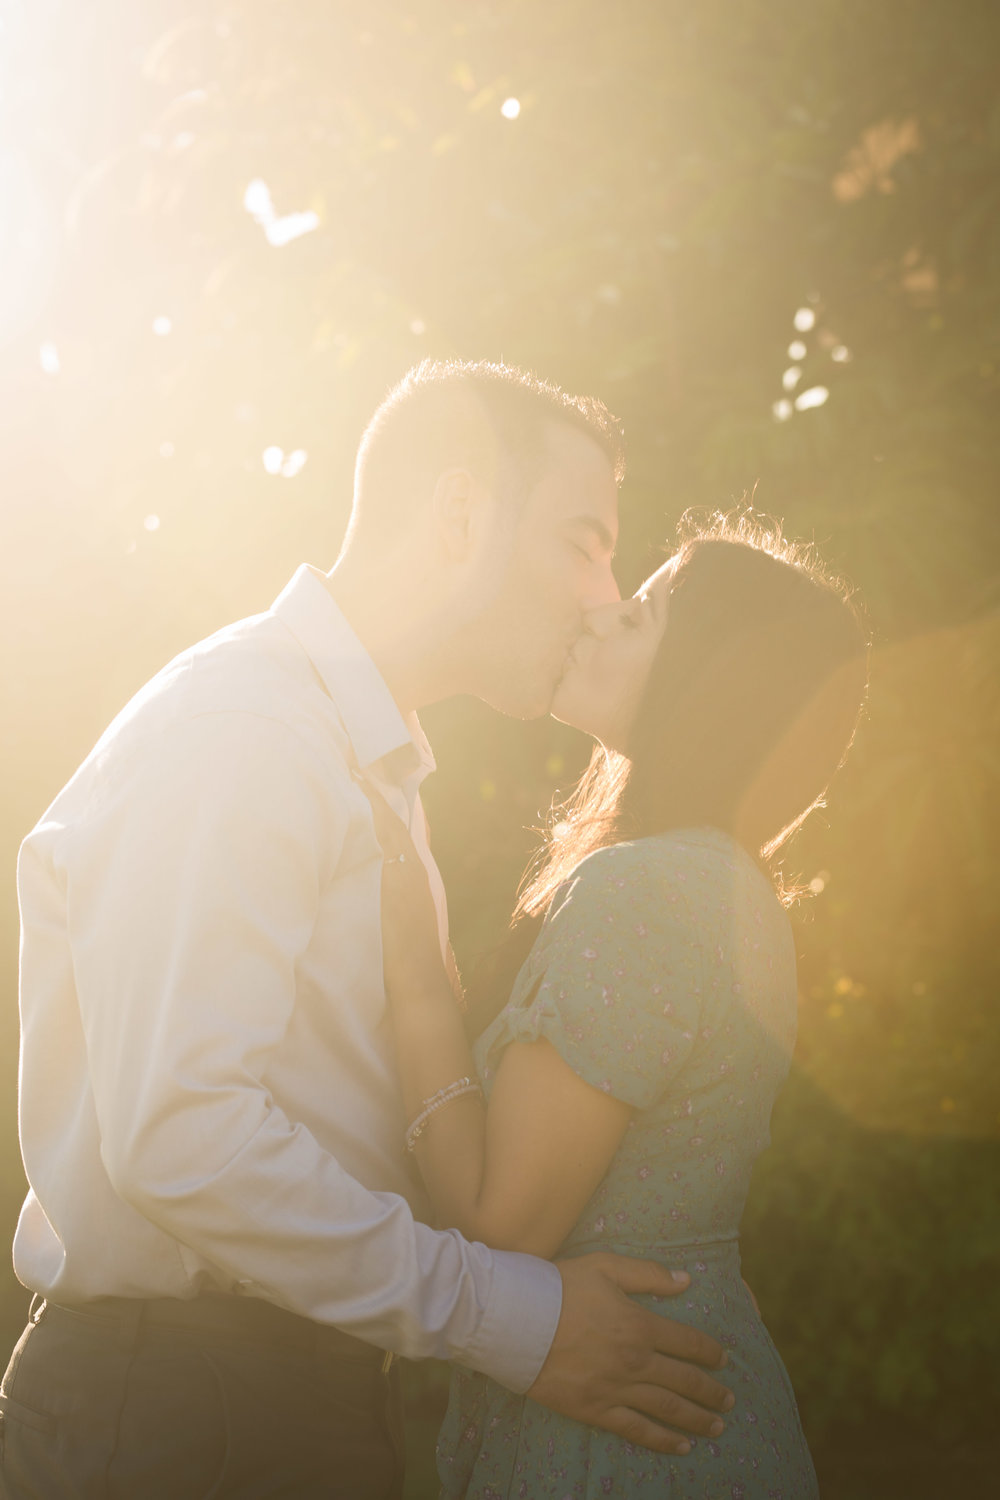 Will&VictoriaProposal-40.jpg